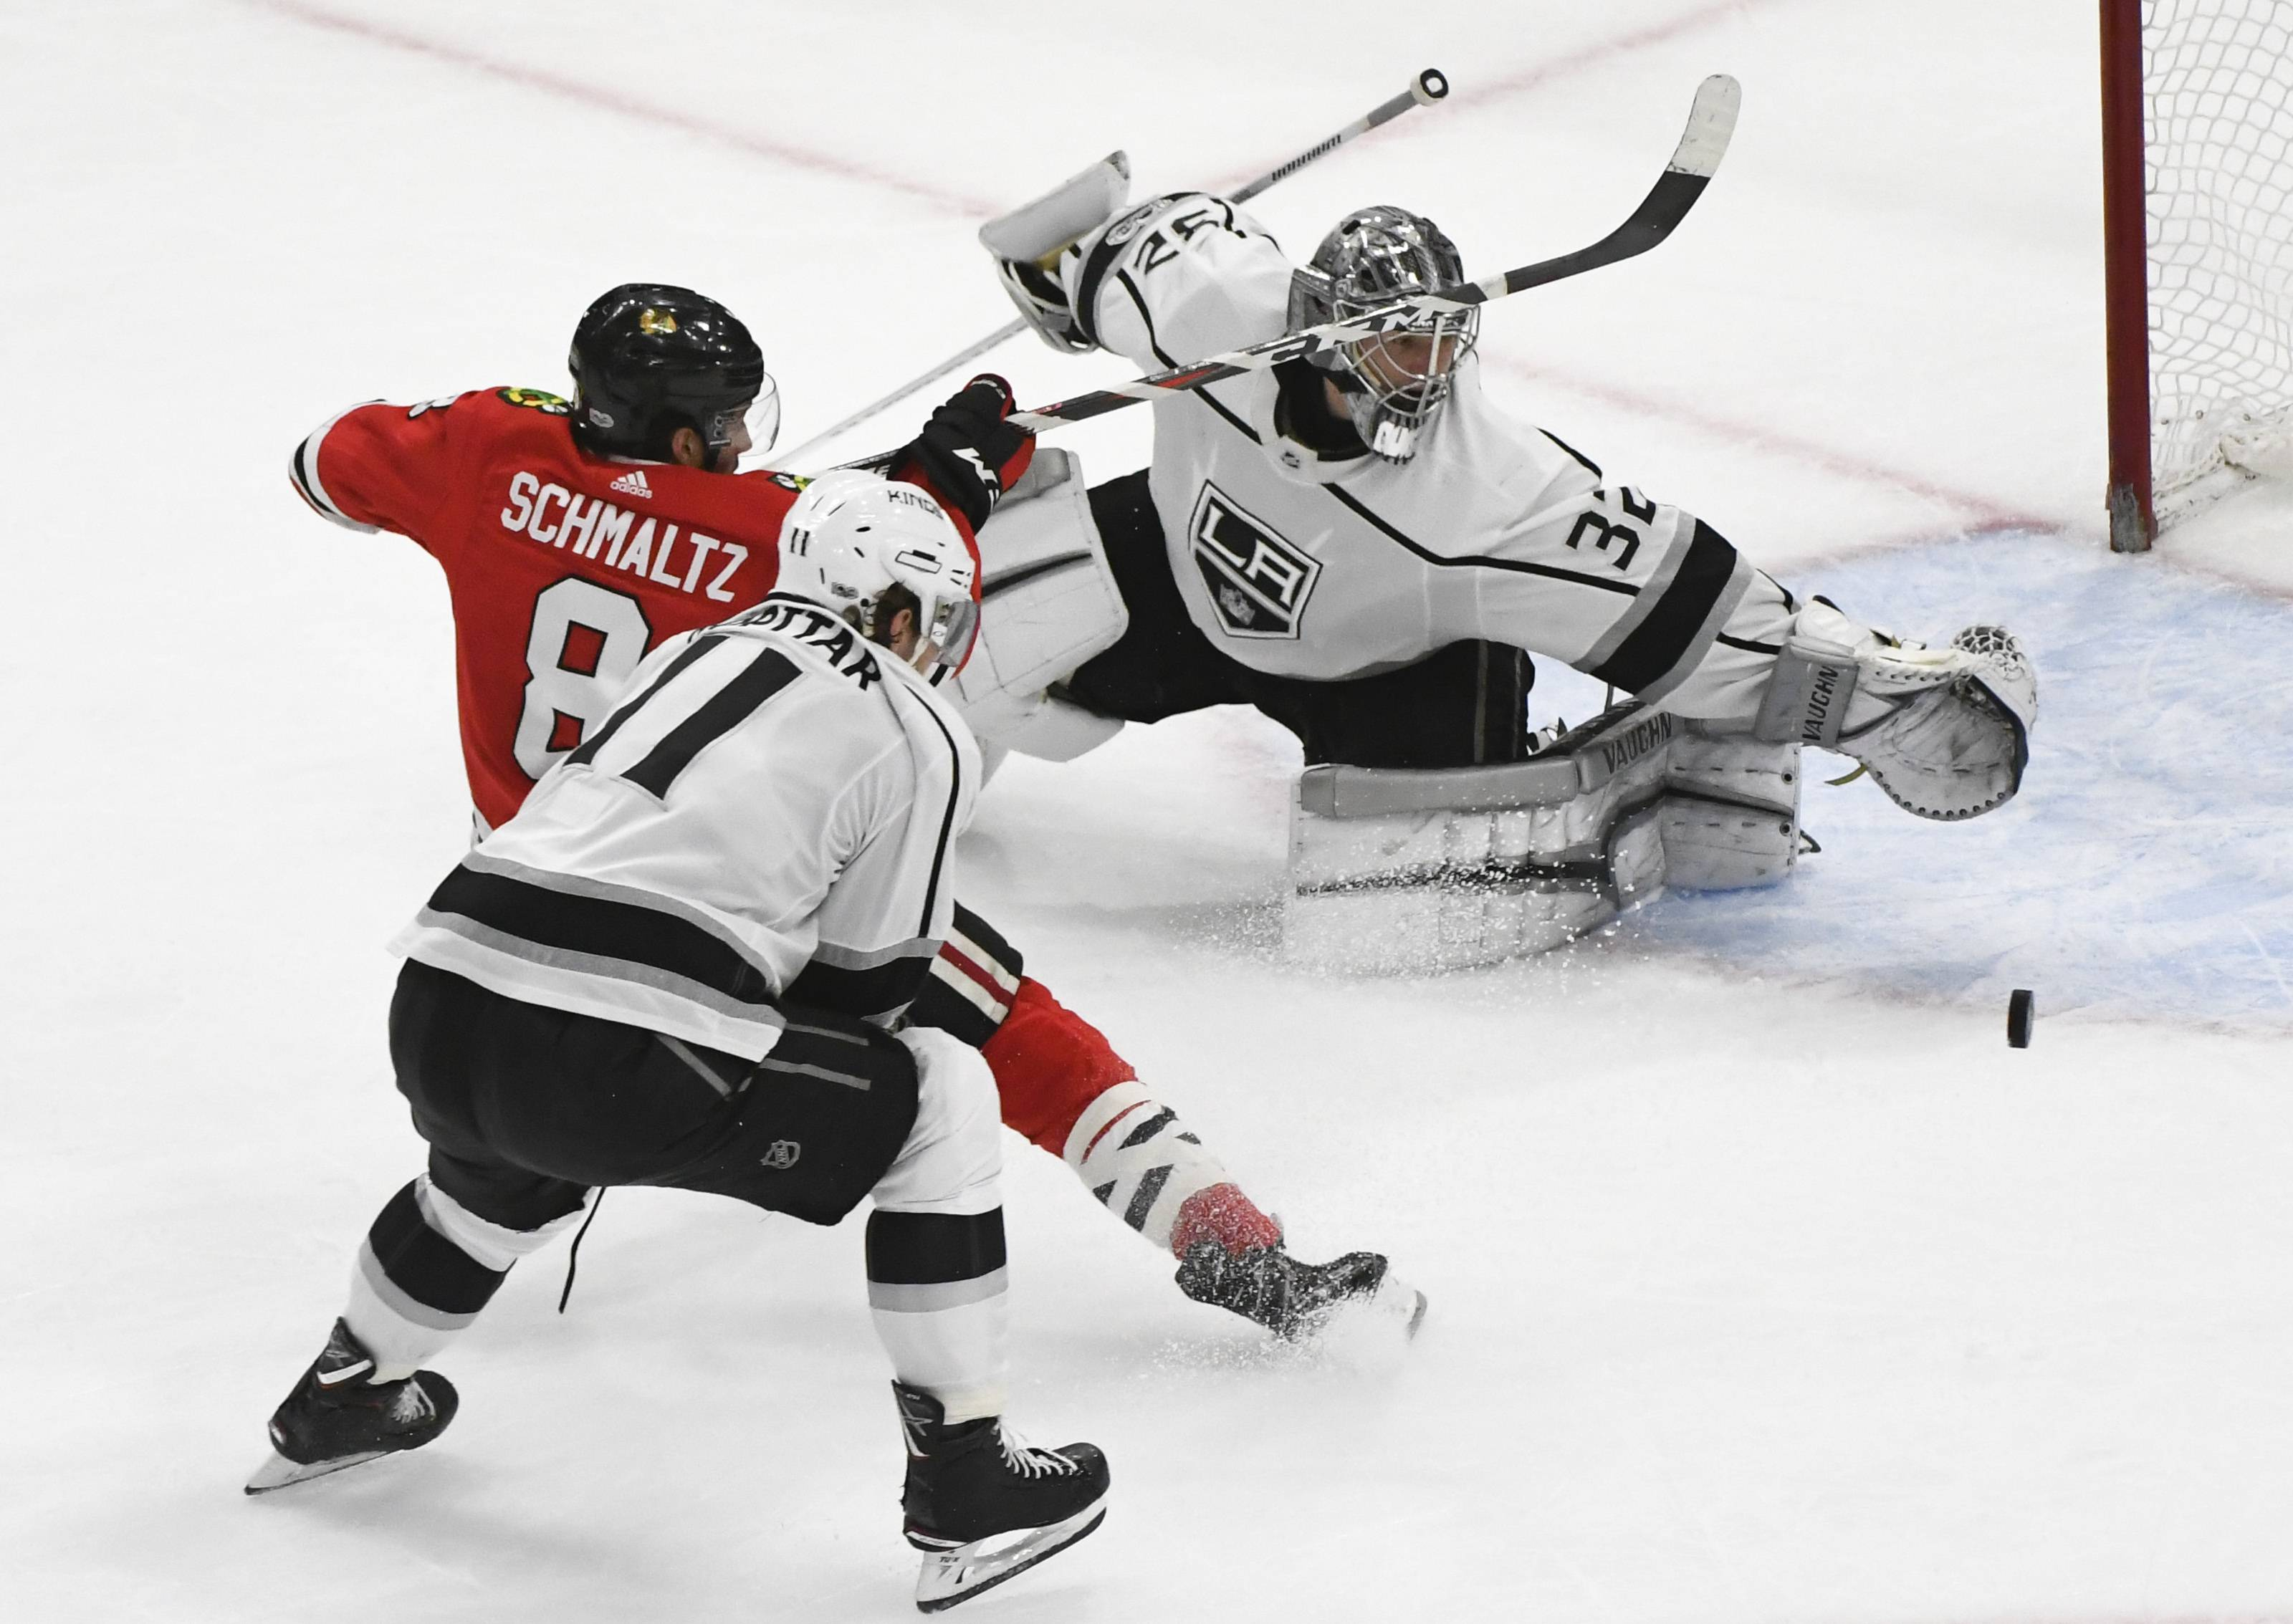 Chicago Blackhawks center Nick Schmaltz (8) shoots as Los Angeles Kings goalie Jonathan Quick (32) defends while center Anze Kopitar (11) helps on defense during the second period of an NHL hockey game Sunday Dec. 3, 2017, in Chicago.